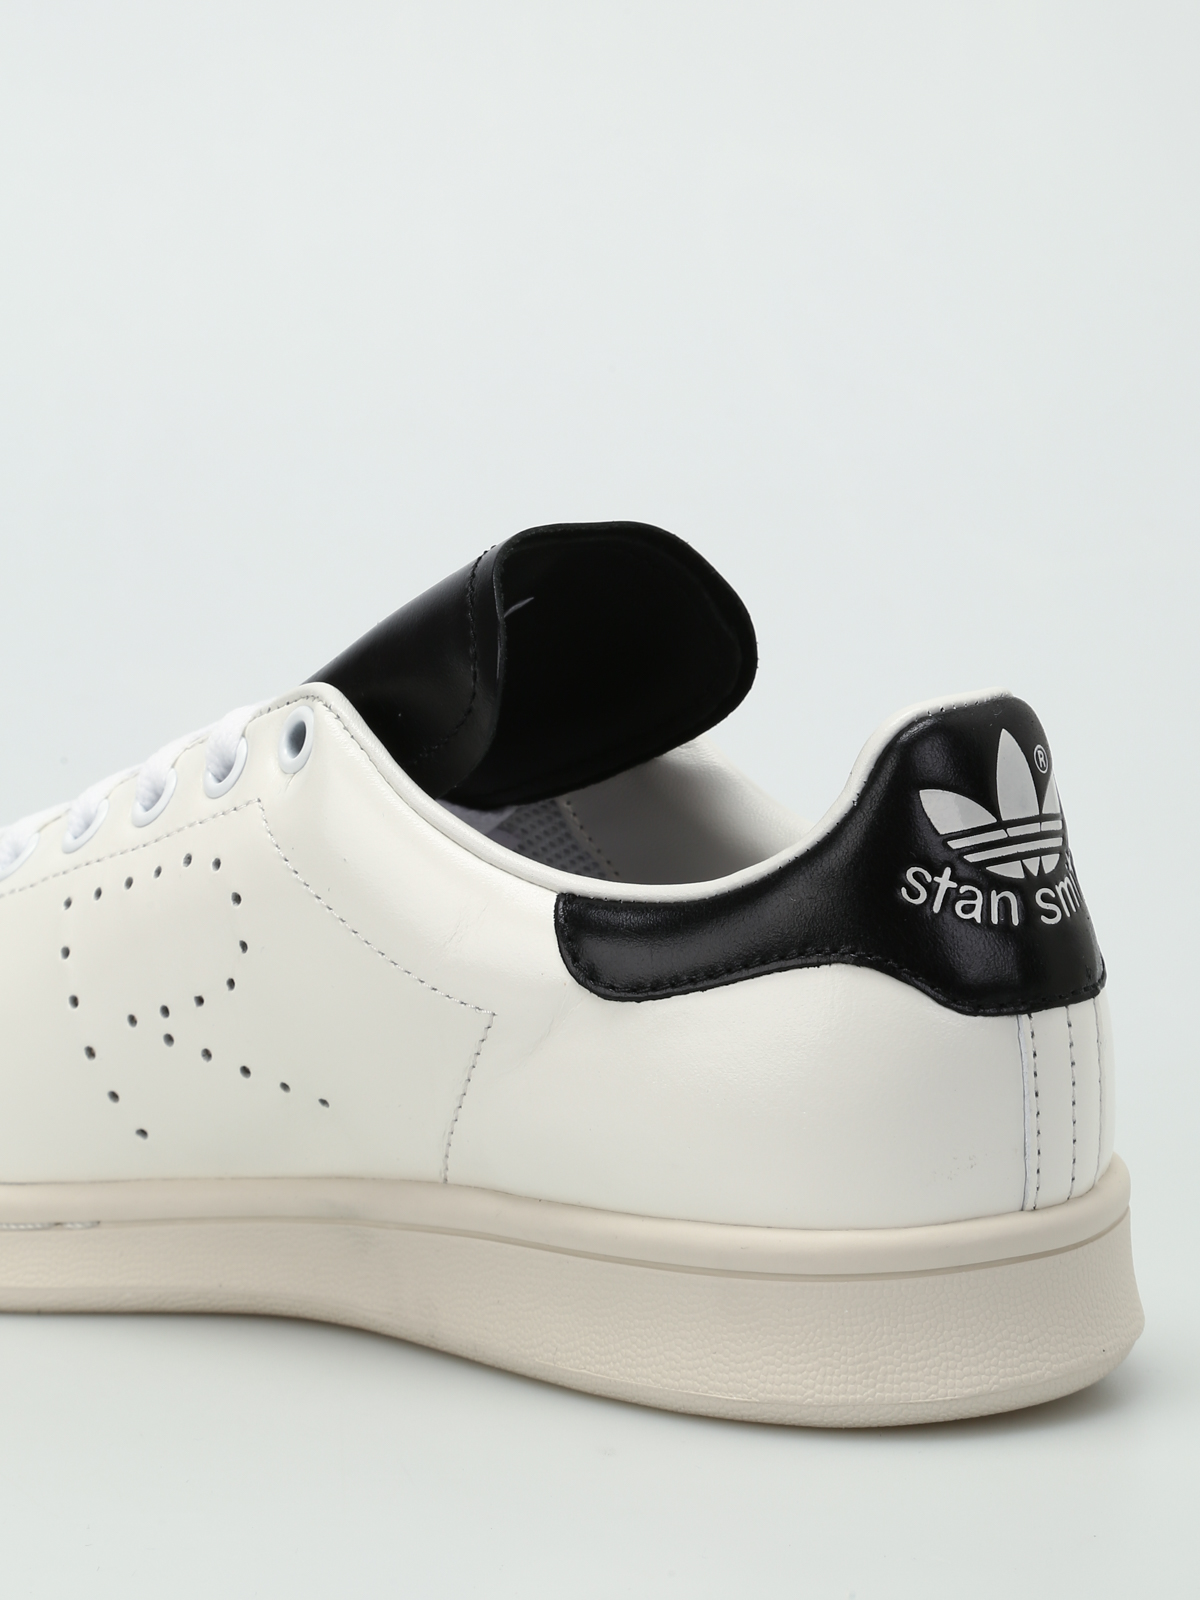 online store a1910 62219 Stan Smith leather sneakers shop online  RAF SIMONS ADIDAS